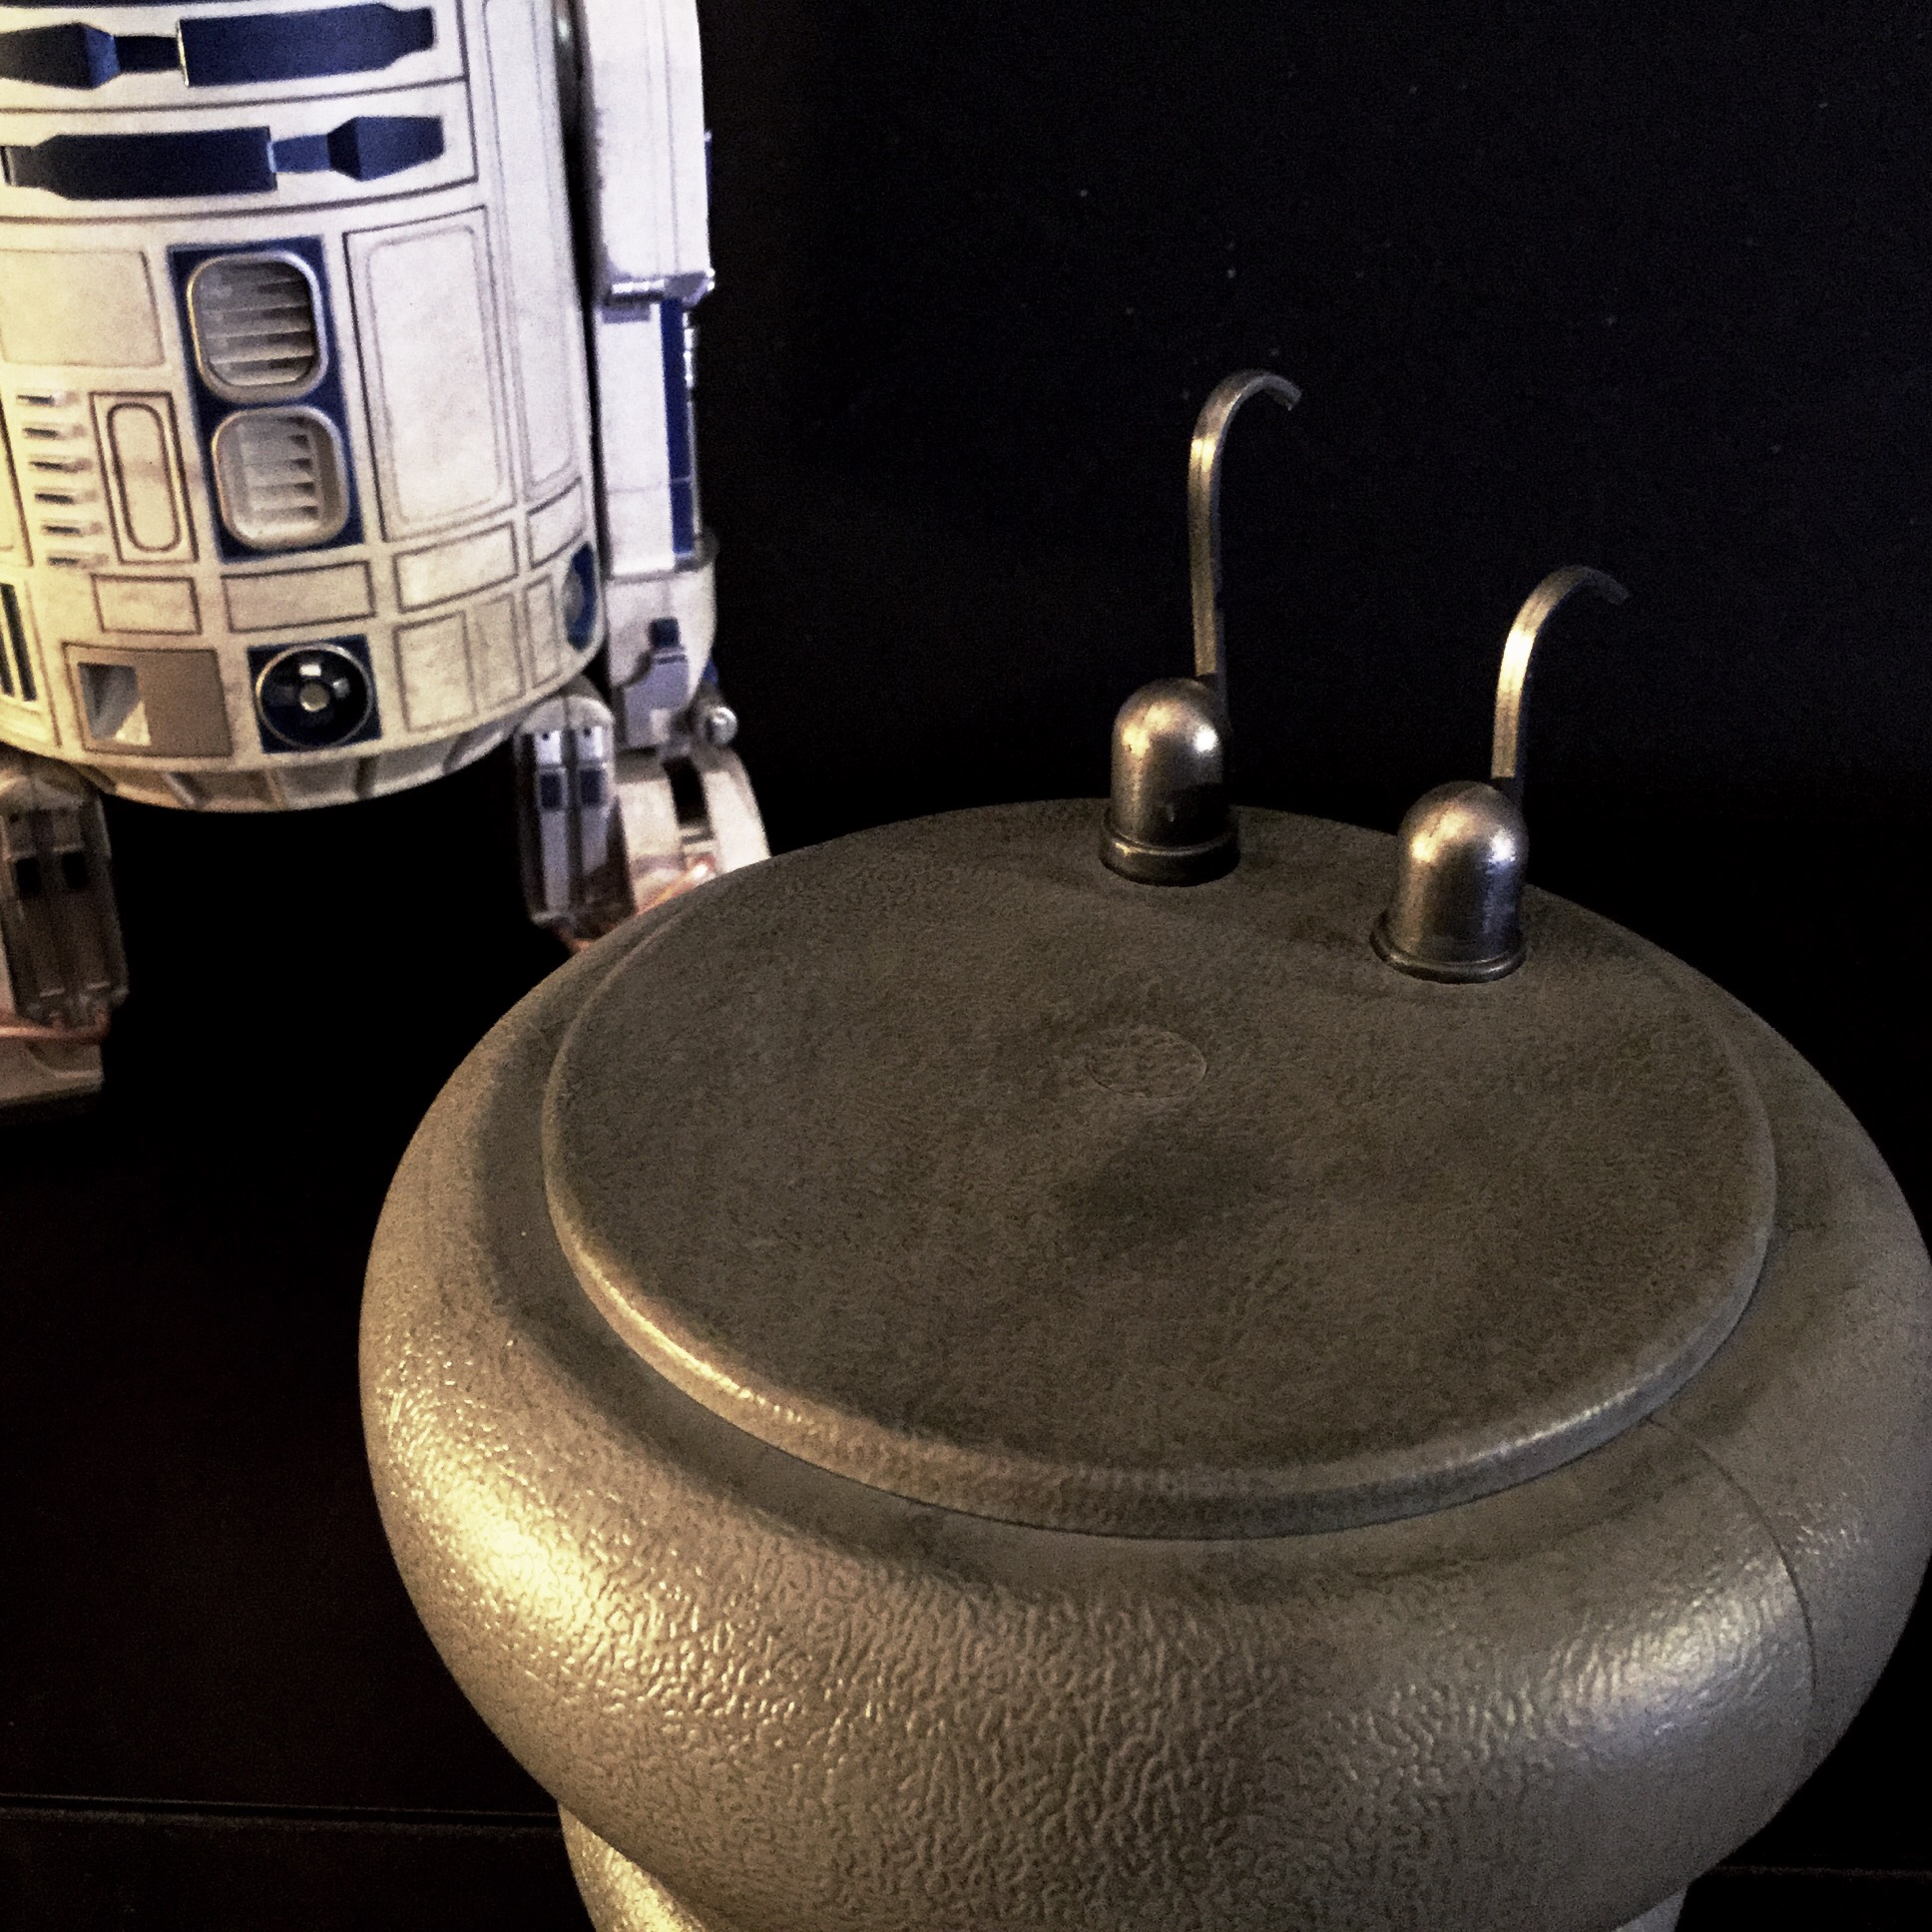 [REVIEW] Star Wars : R2-D2 Deluxe (Sideshow) 16418187086_00202daa22_o